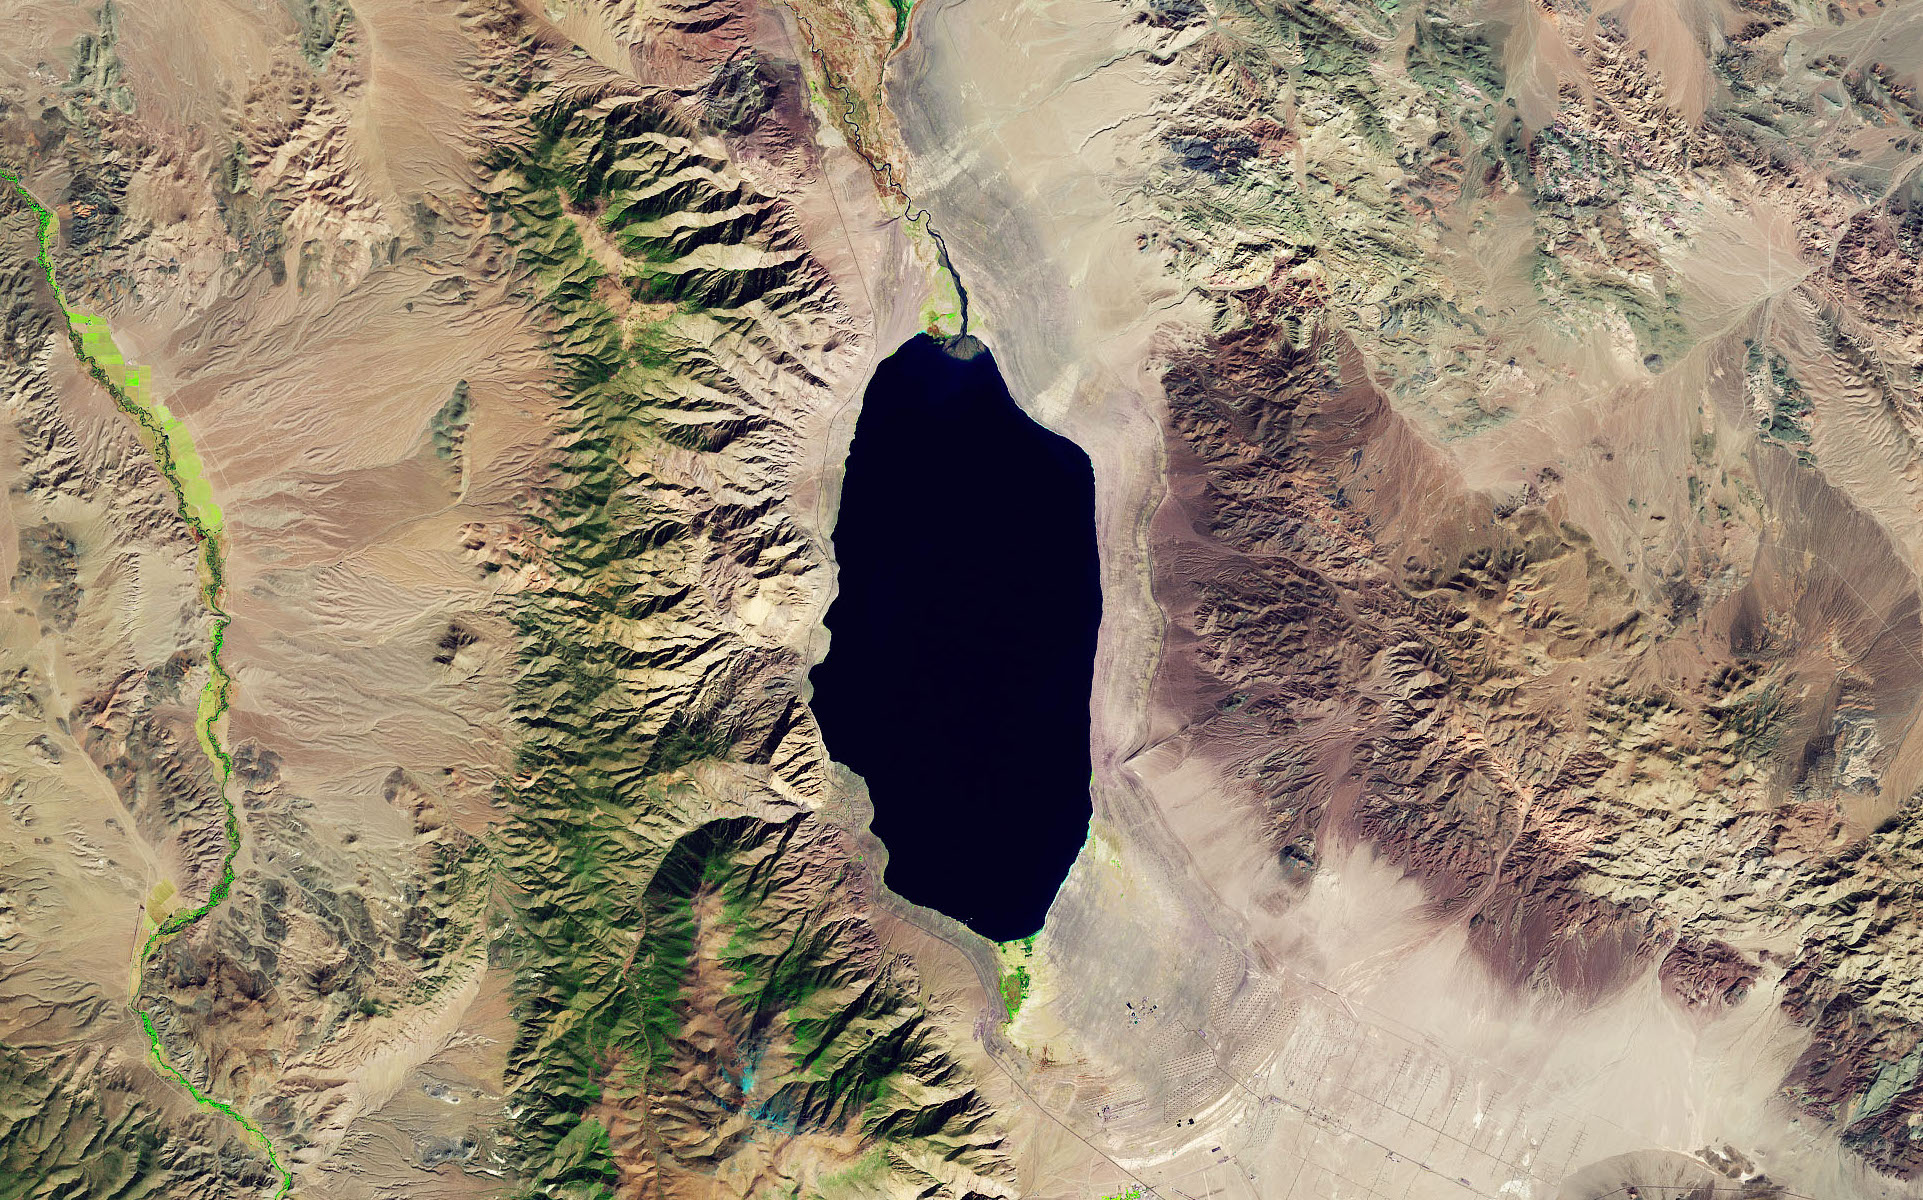 Today's Image of the Day comes from the NASA Earth Observatory and features a look at Walker Lake, located about 75 miles southeast of Reno, Nevada.